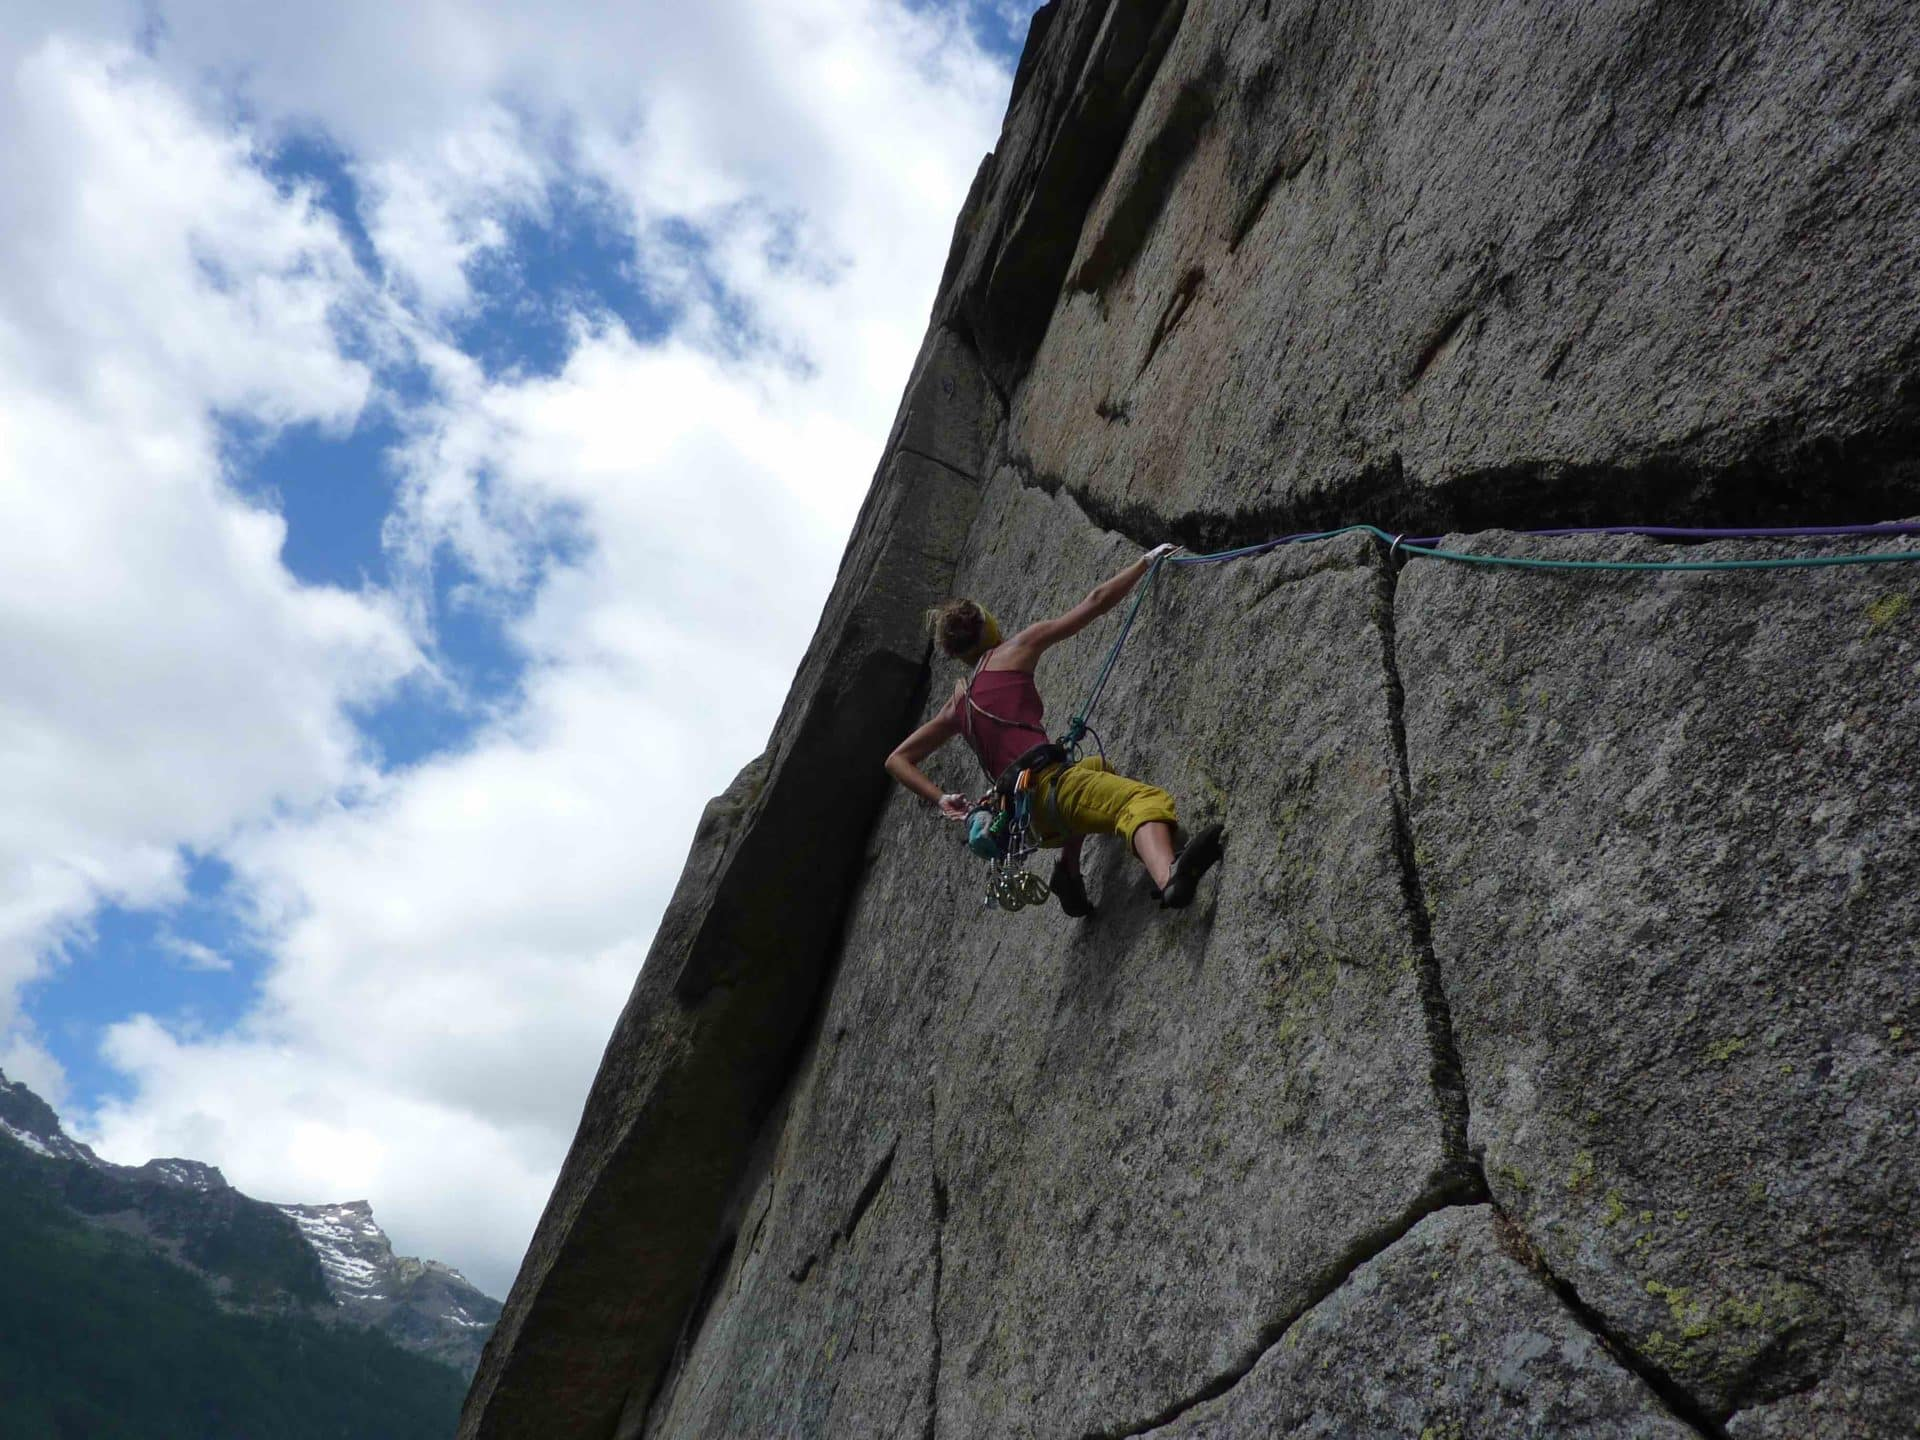 Guided multi-pitch climbing in the Alps